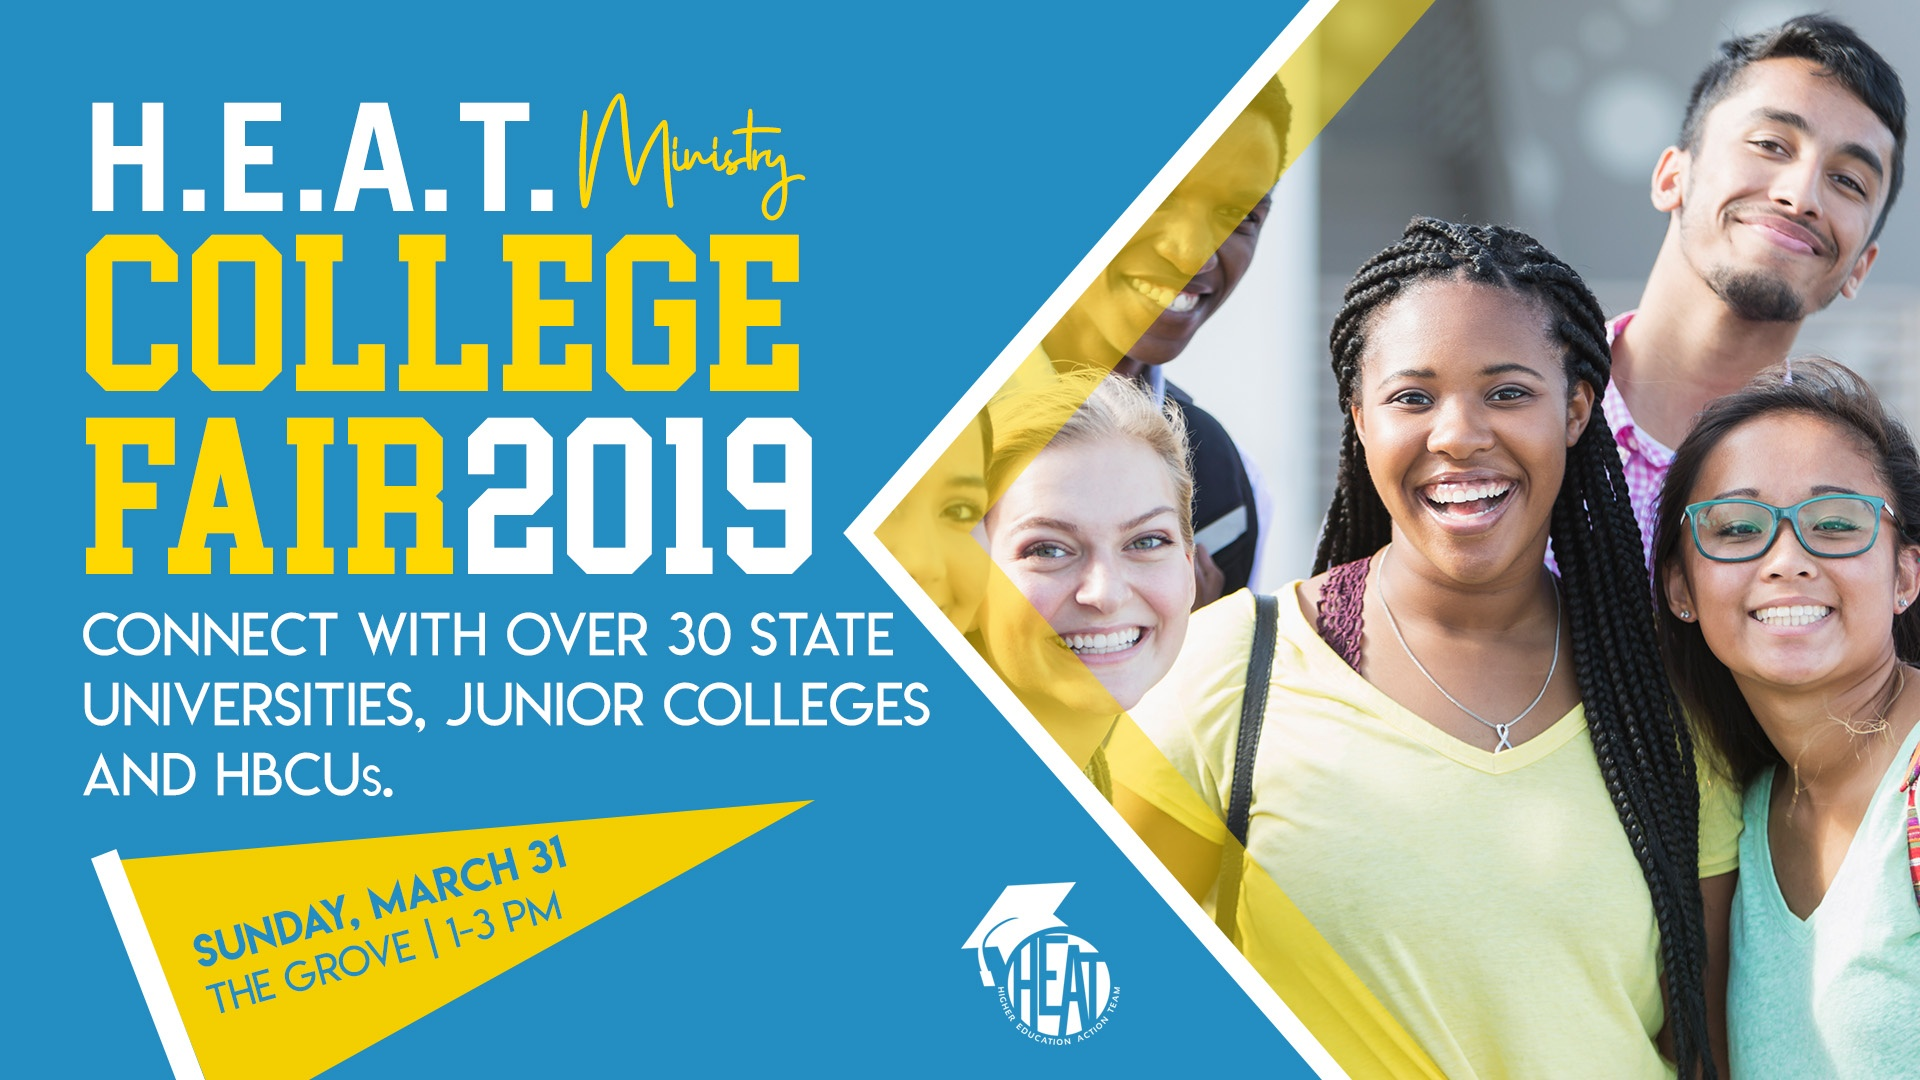 HEAT College Fair 2019